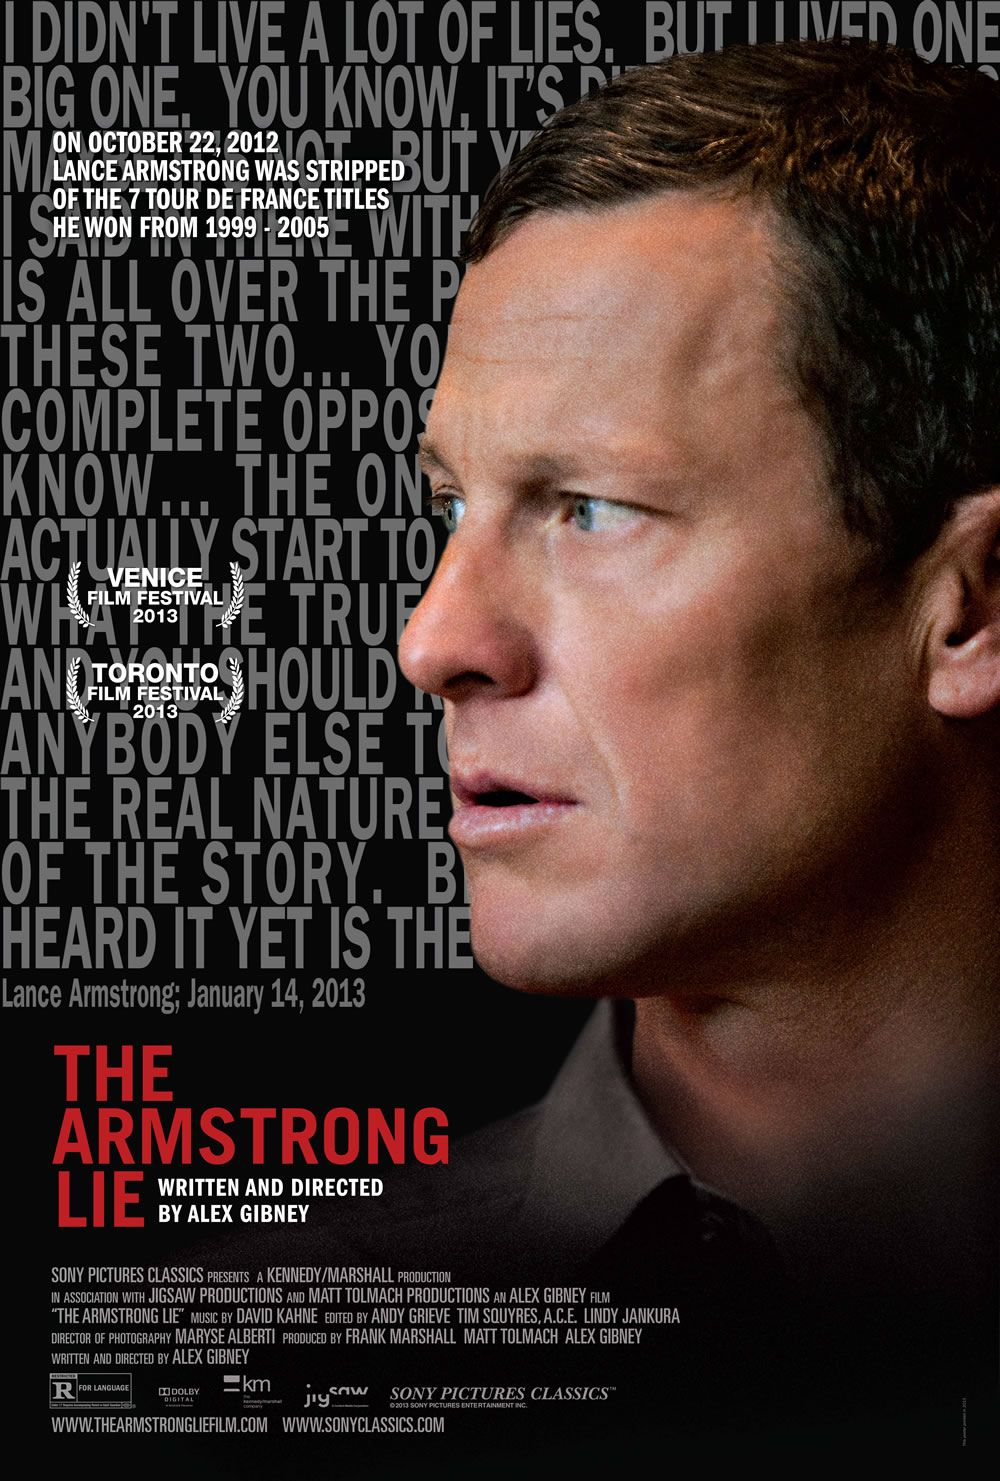 THE ARMSTRONG LIE, THE INVISIBLE WOMAN, and THE PAST ... джозеф гордон левитт